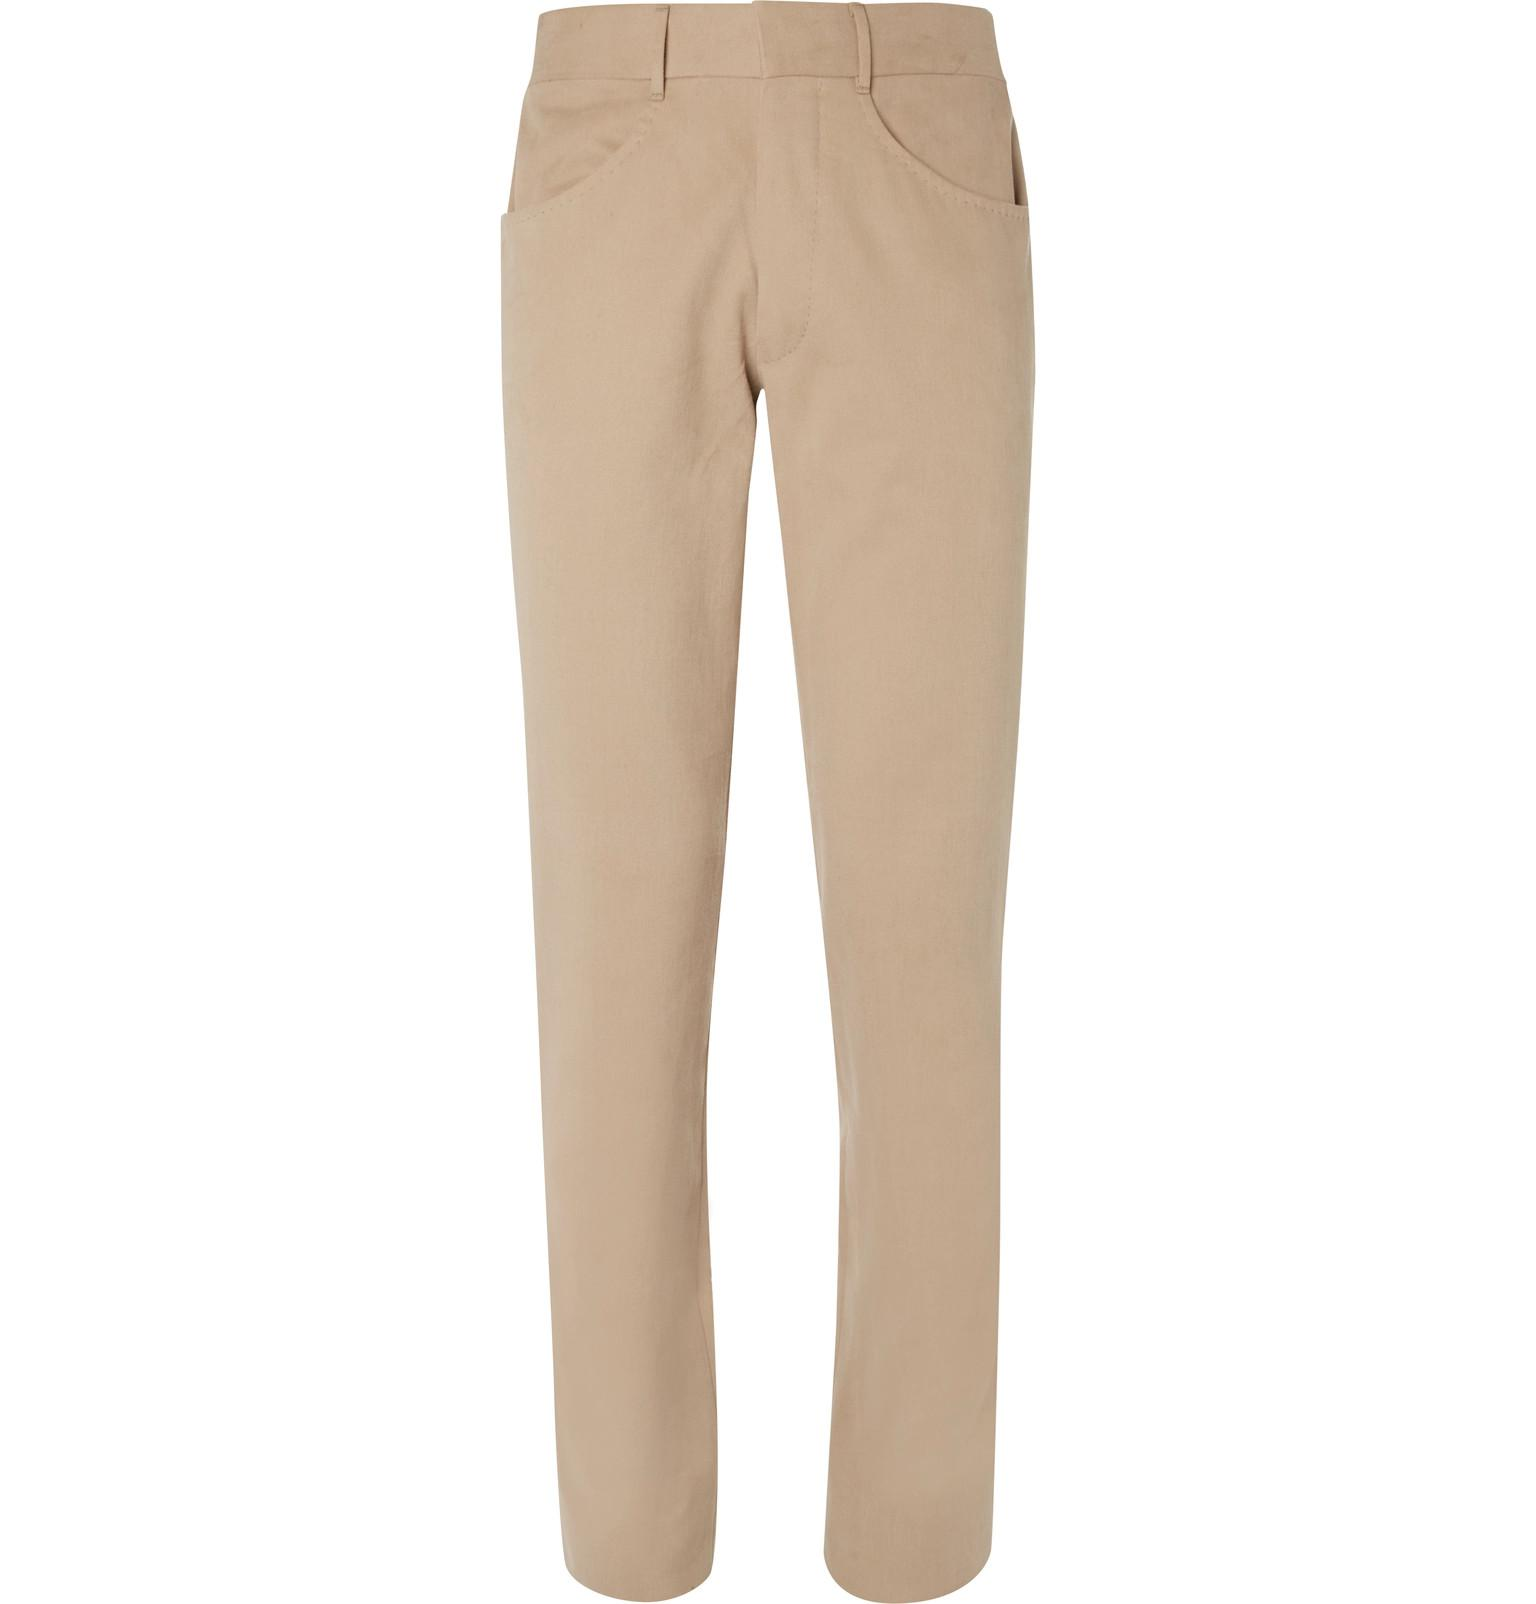 Brushed-cotton Twill Trousers Anderson & Sheppard Amazon Sale Online SZ3on4abs